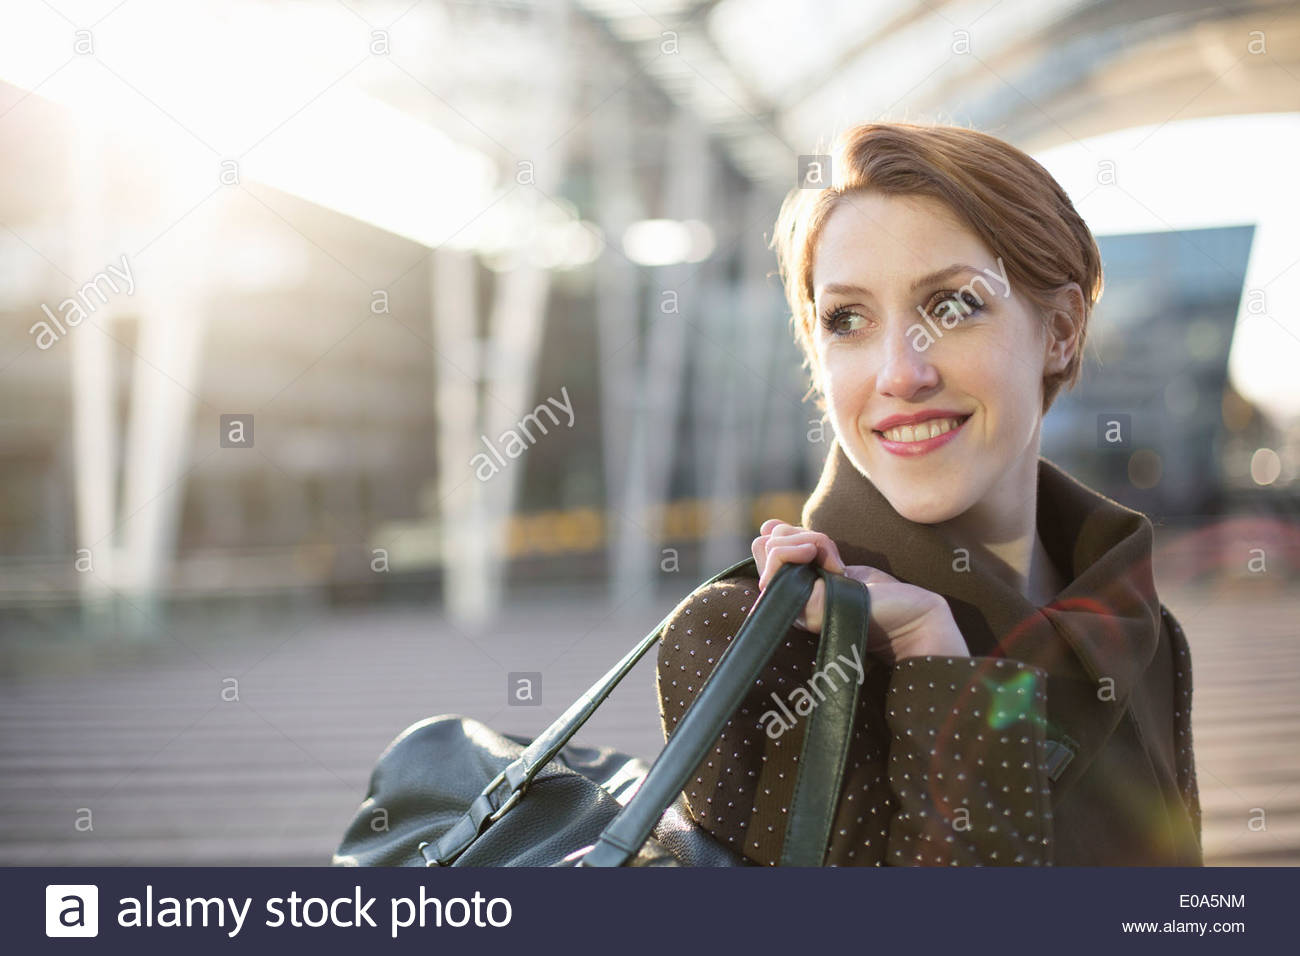 Young woman going on trip - Stock Image